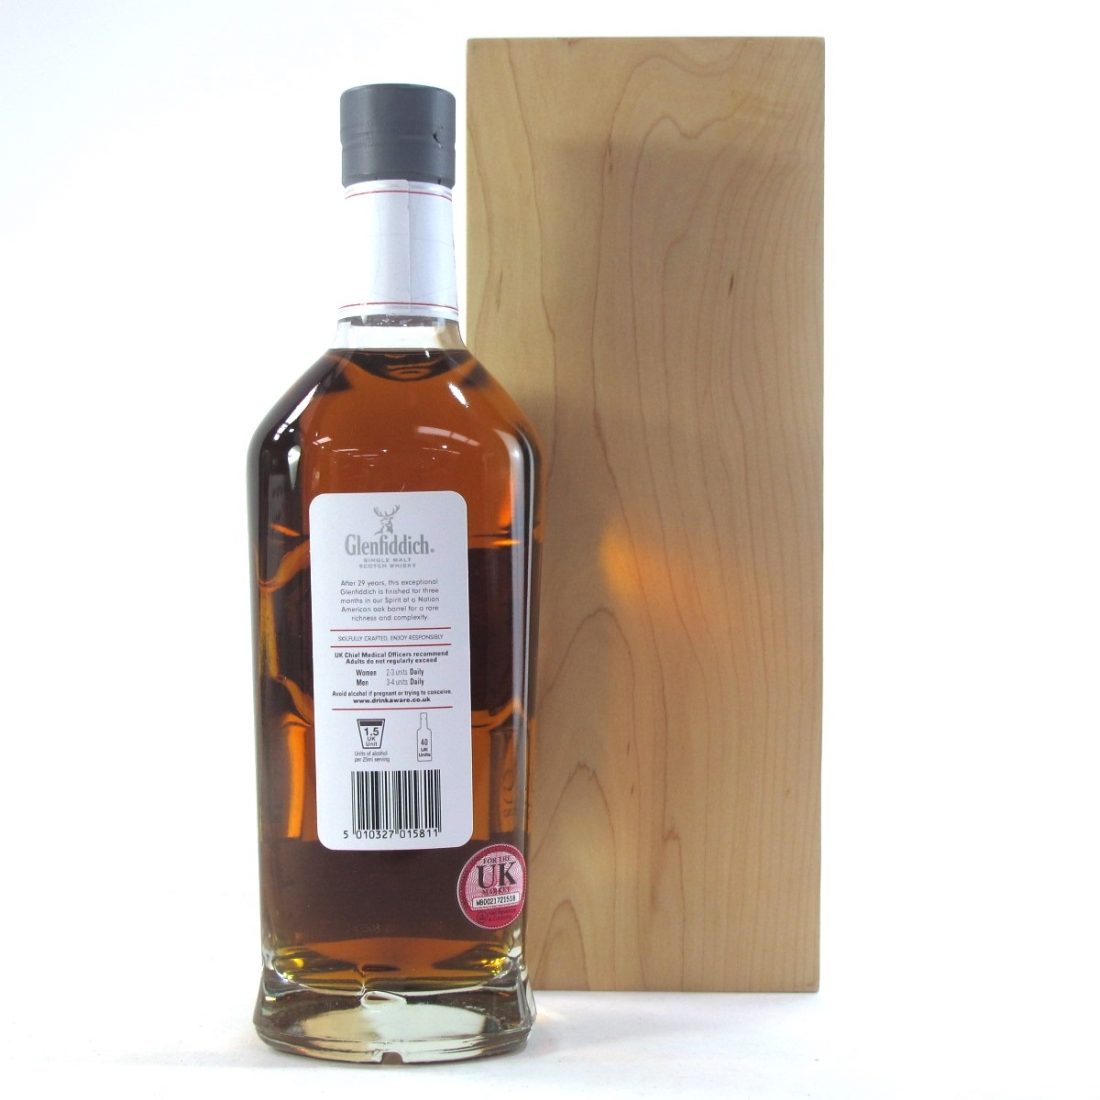 Glenfiddich 29 Year Old Spirit of a Nation / South Pole Challenge 2013